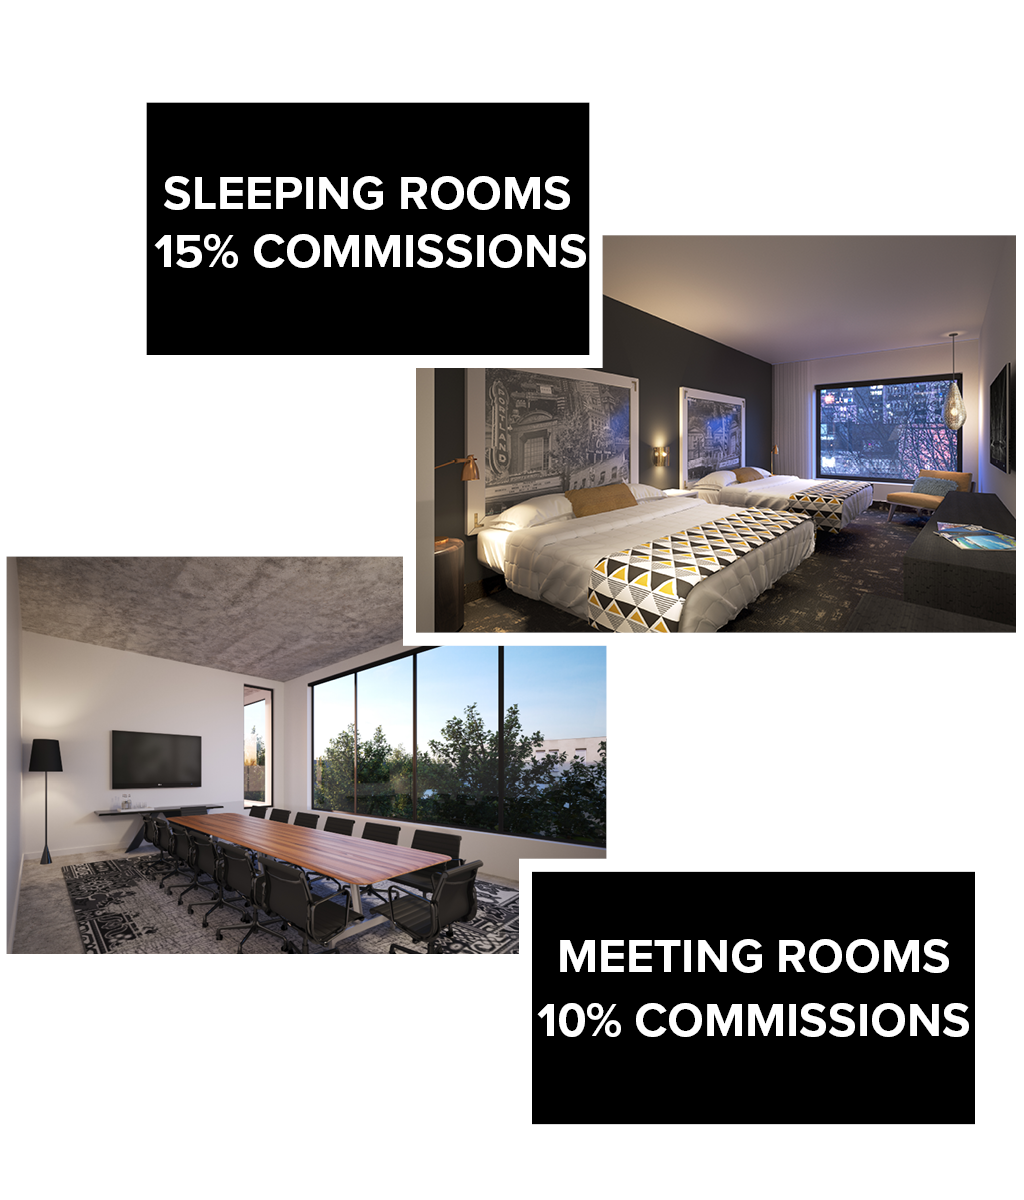 Jupiter NEXT increased hotel and meeting room commissions